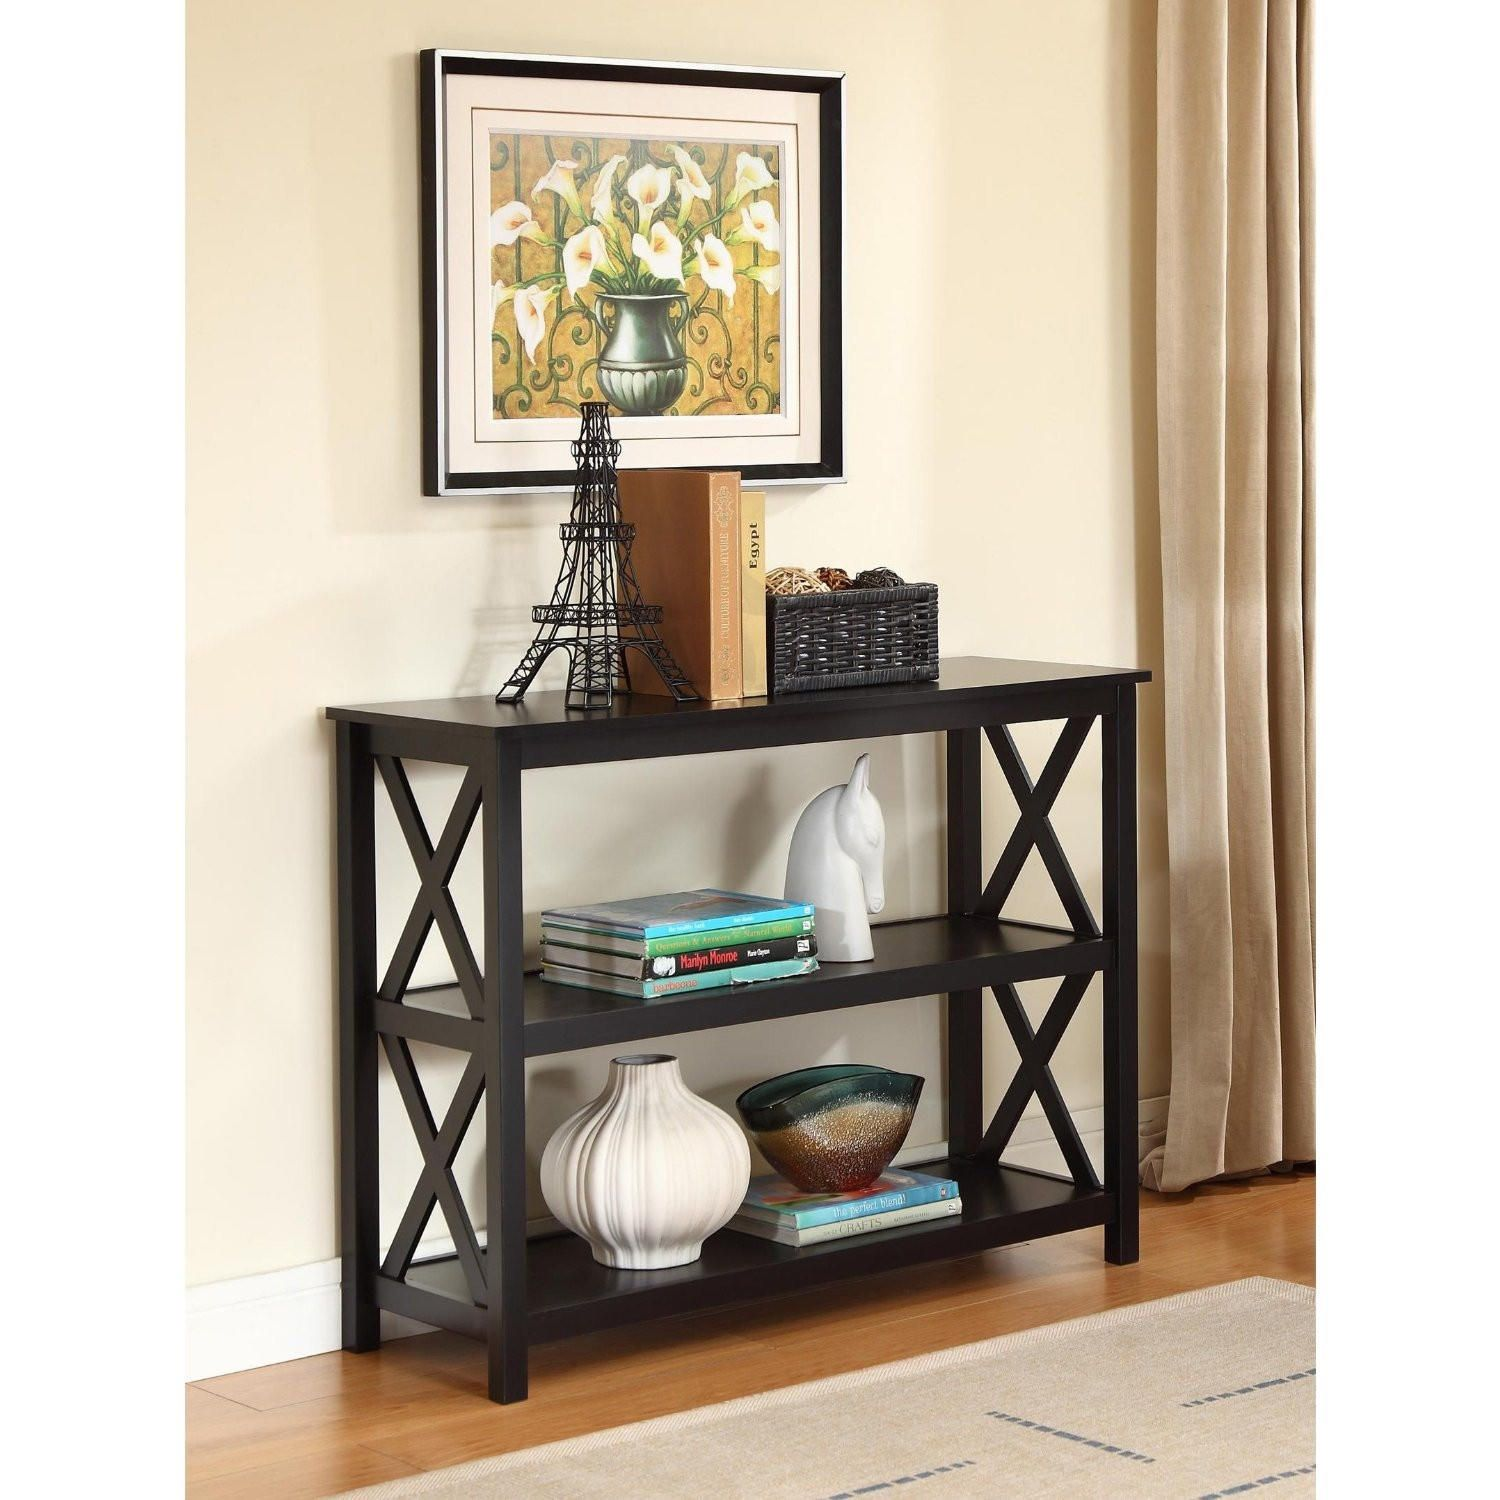 3 Tier Black Sofa Table Bookcase Living Room Shelves Black Sofa Table Living Room Shelves Black Console Table